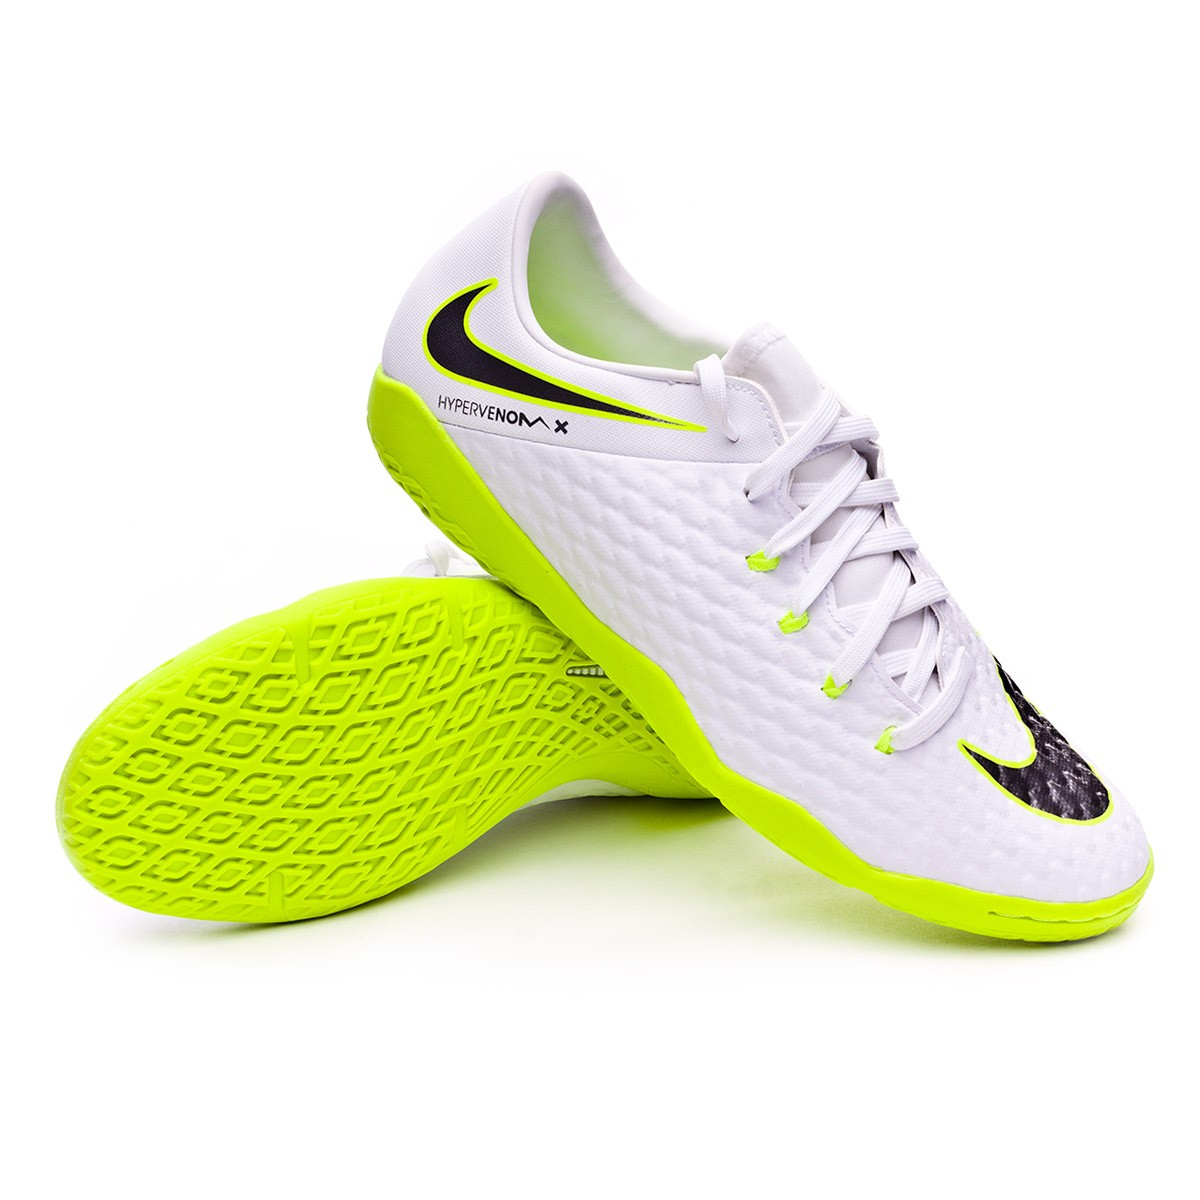 finest selection b75bb d440b Nike Hypervenom PhantomX III Academy IC Futsal Boot